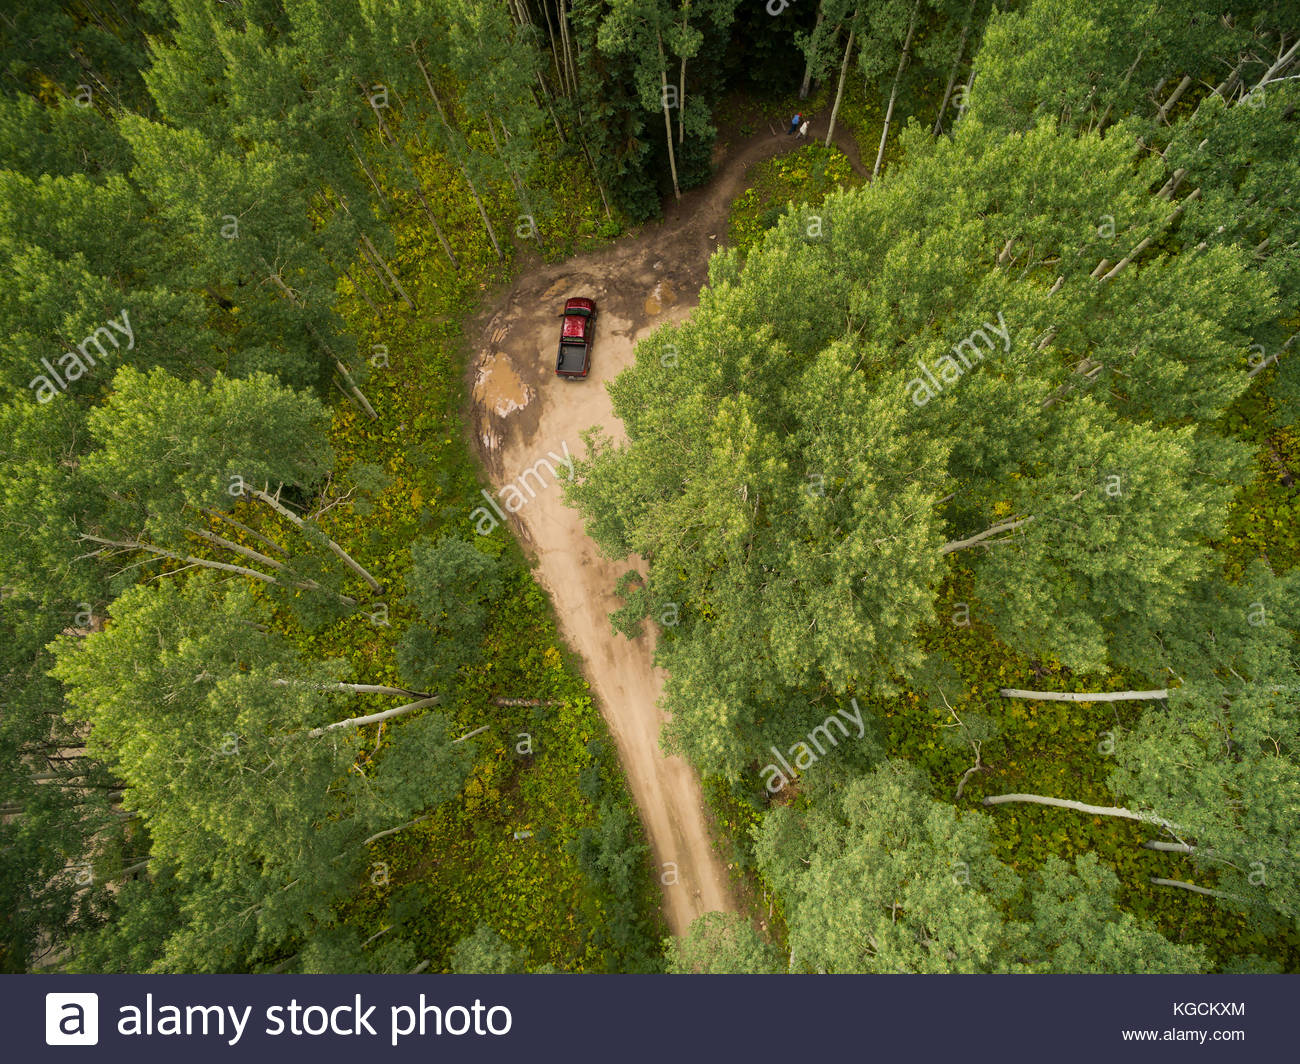 Overhead view of a couple leaving a parking area for a hike through a Colorado aspen forest. - Stock Image